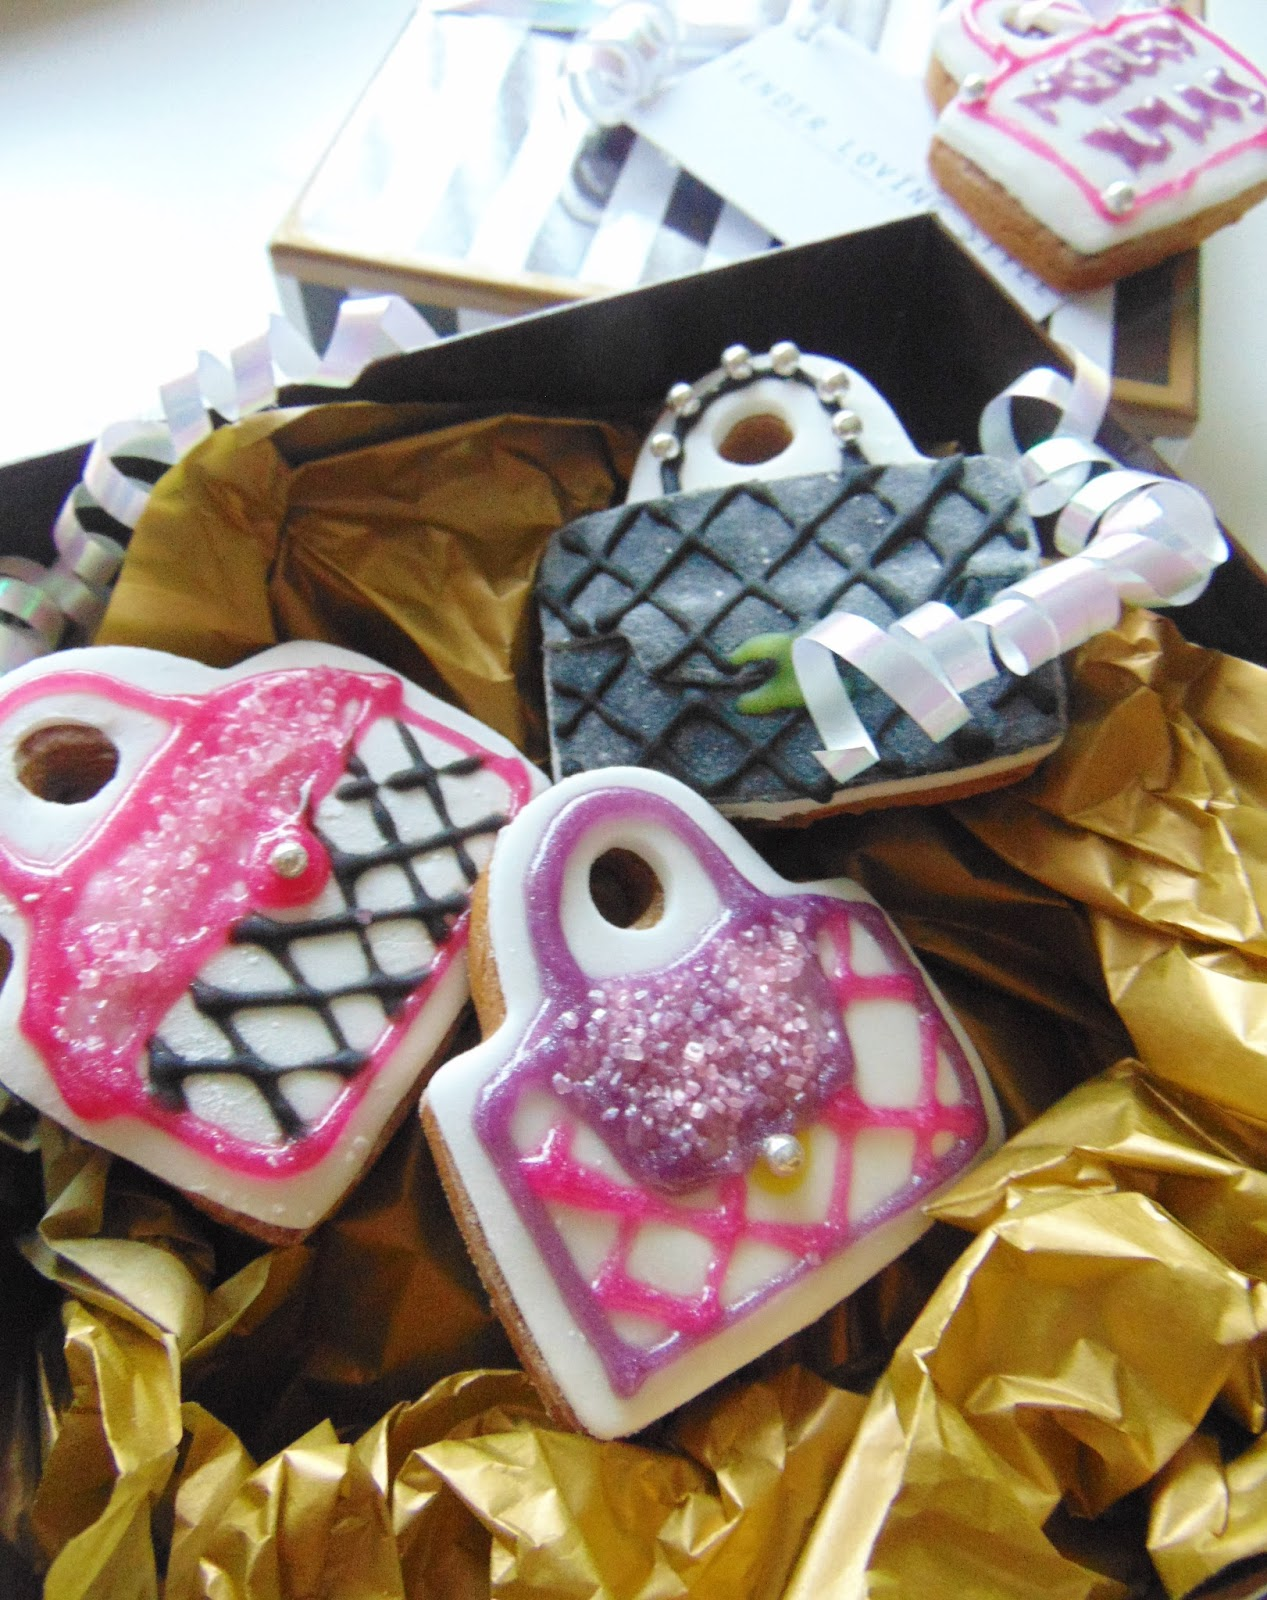 FESTIVE FASHION BISCUITS